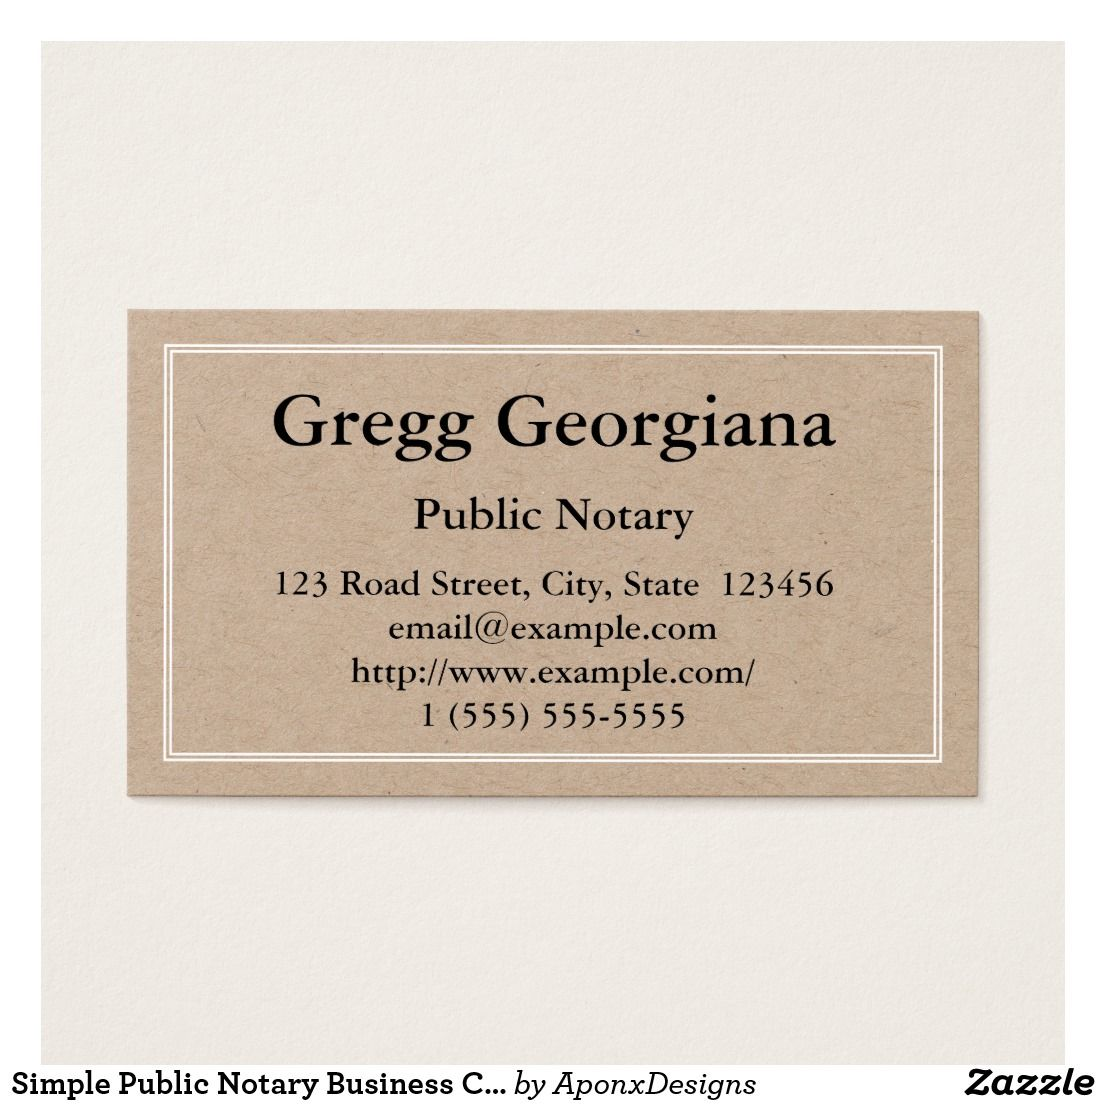 Simple Public Notary Business Card | Customizable Business Card ...